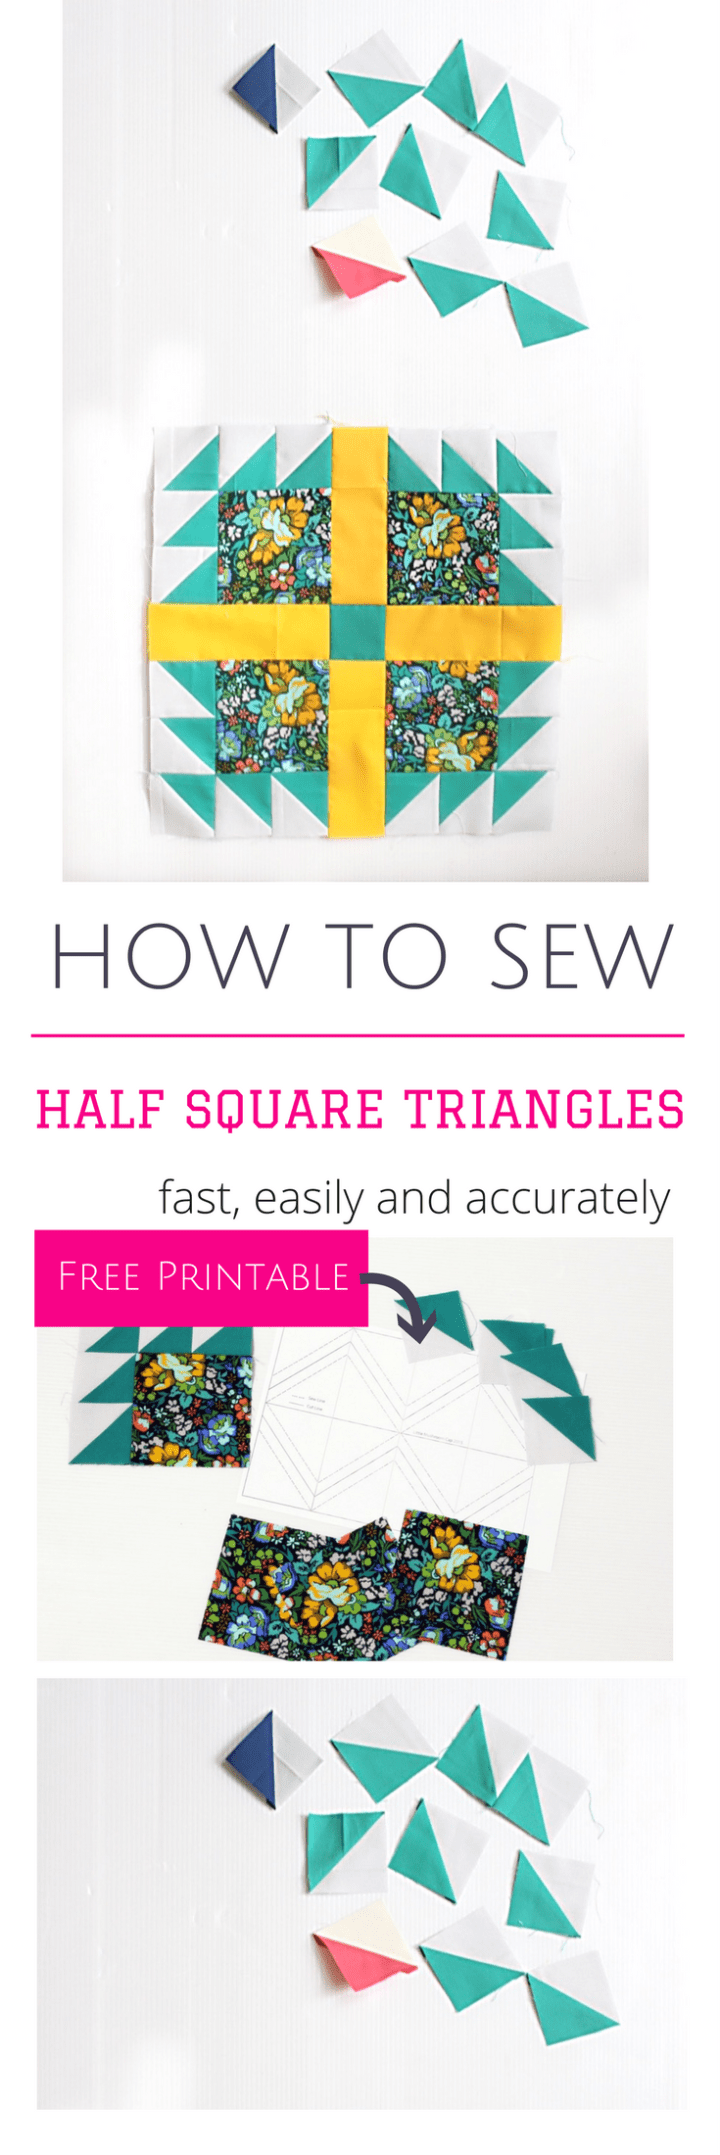 How to sew Half Square triangles fast accurate and easily _ tutorial and free printable